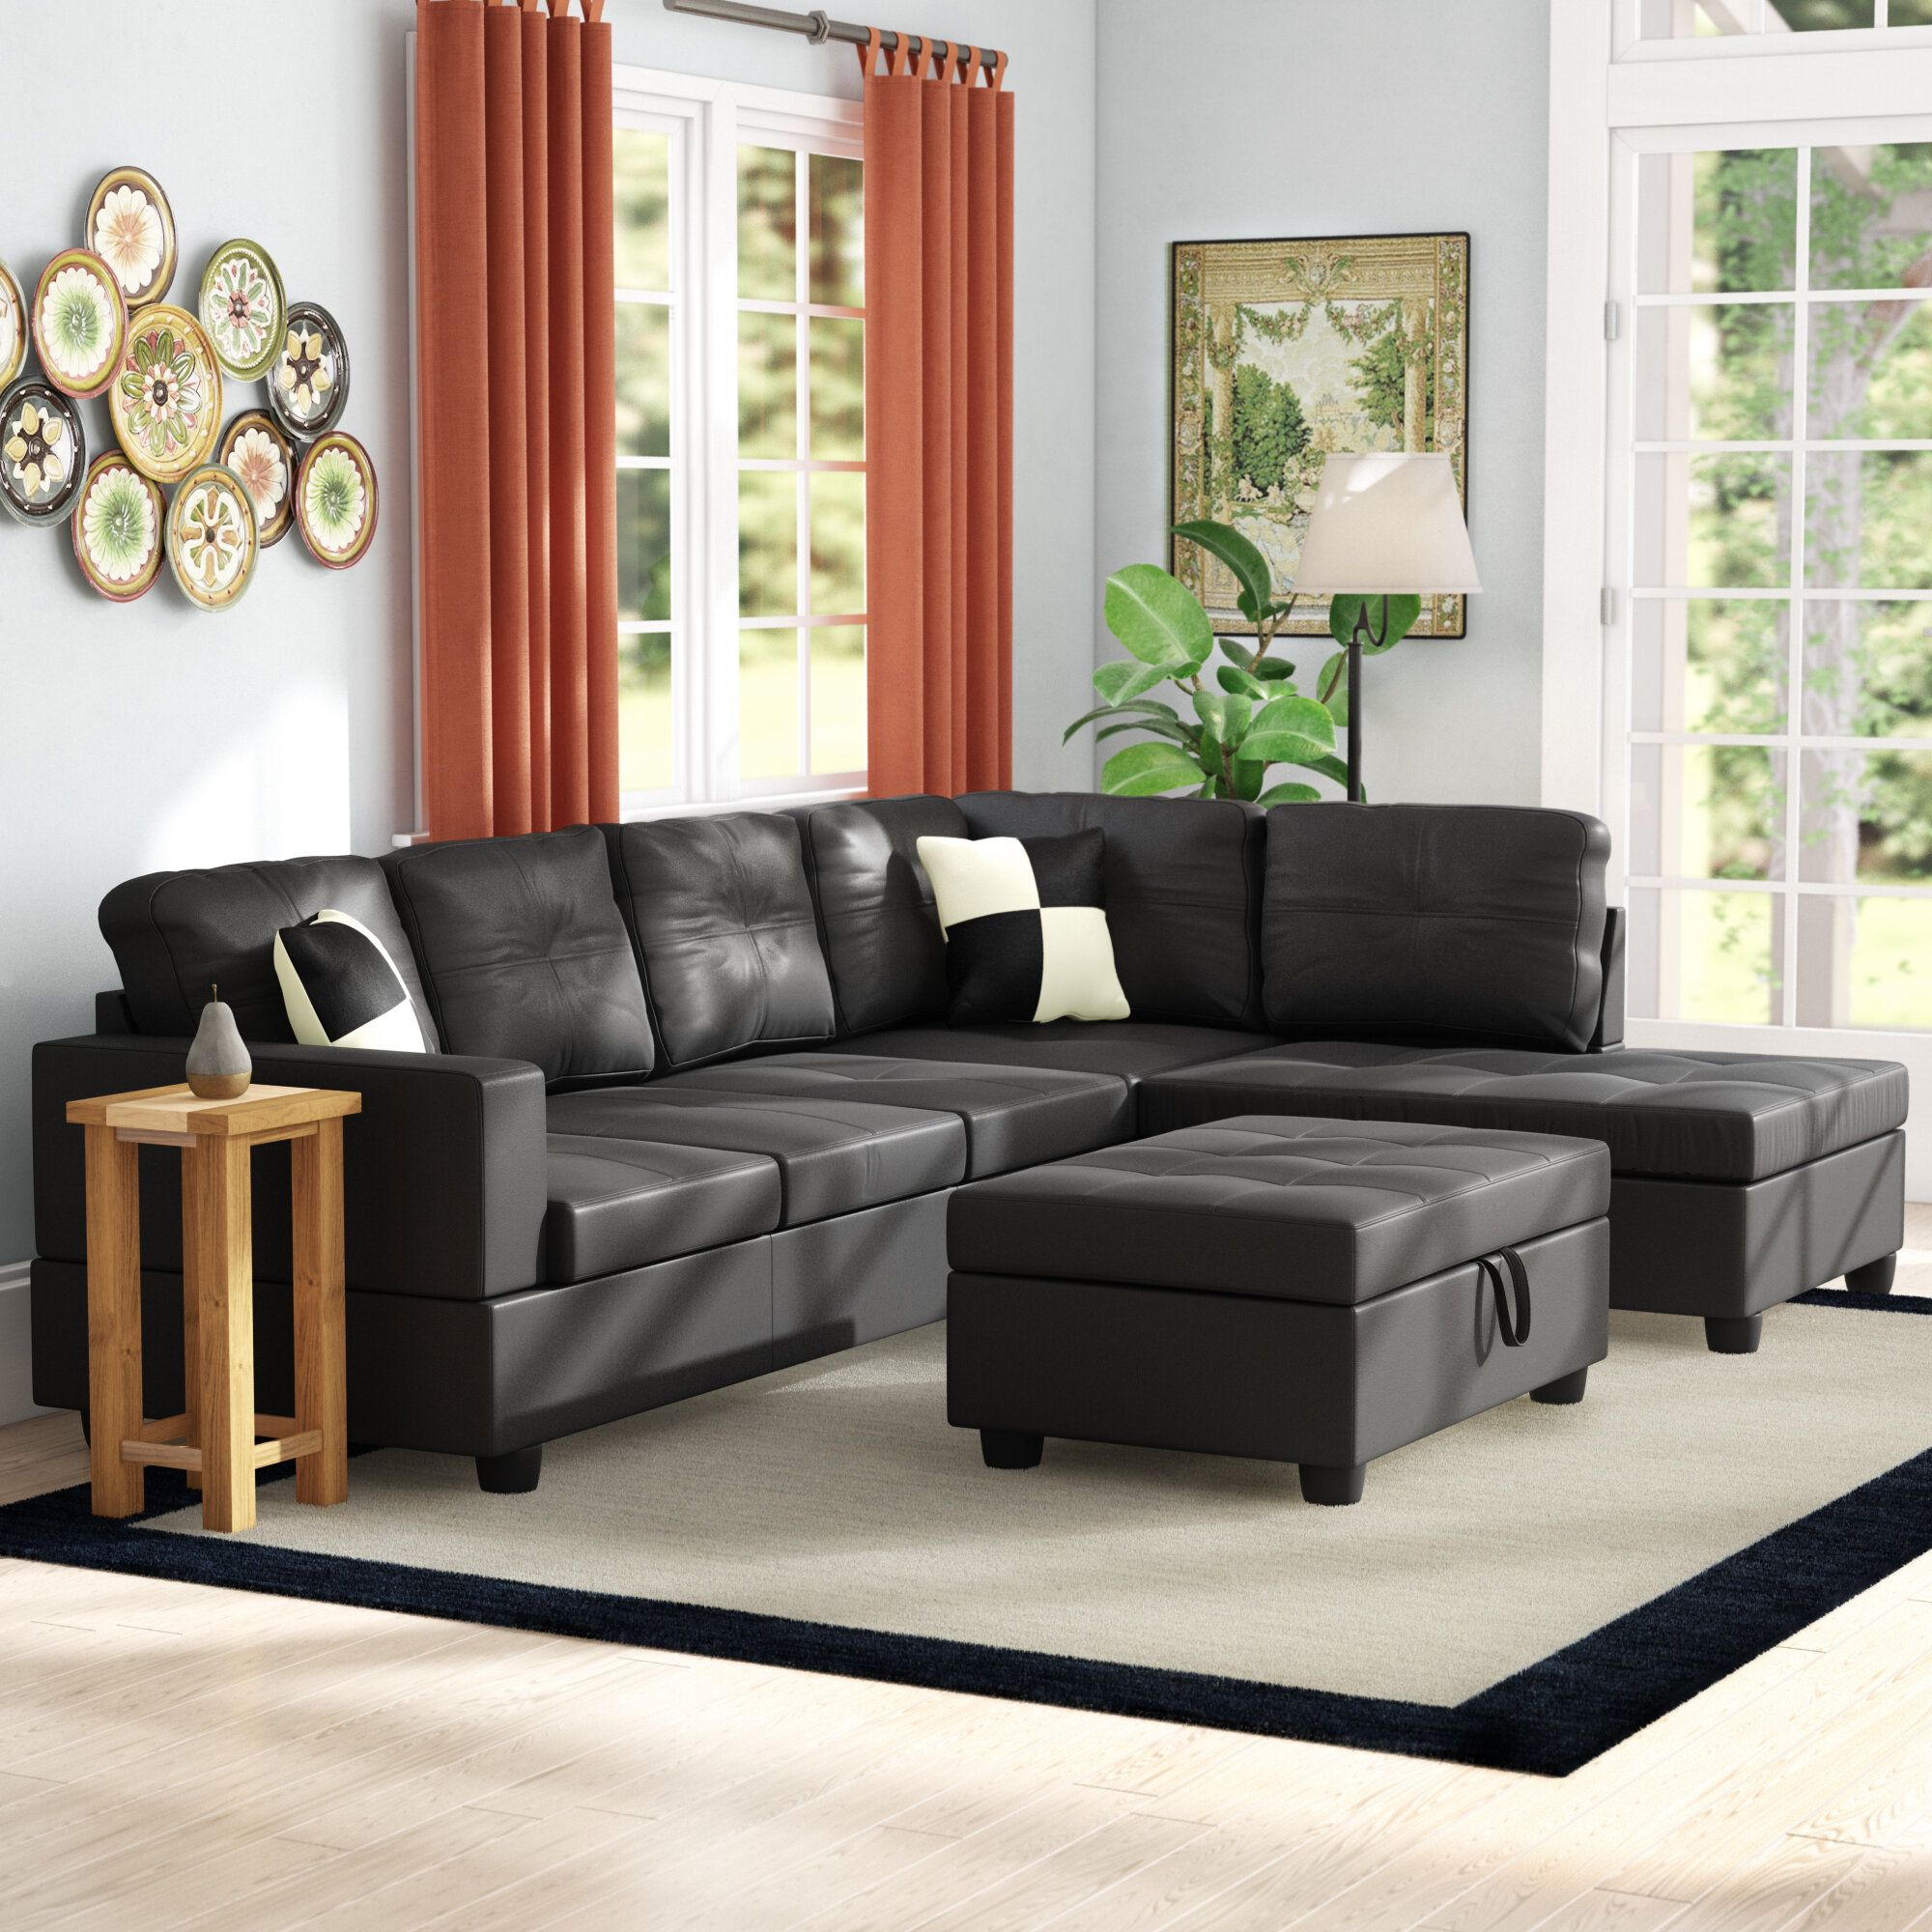 How to Measure for a Sectional Sofa Wayfair in 2020